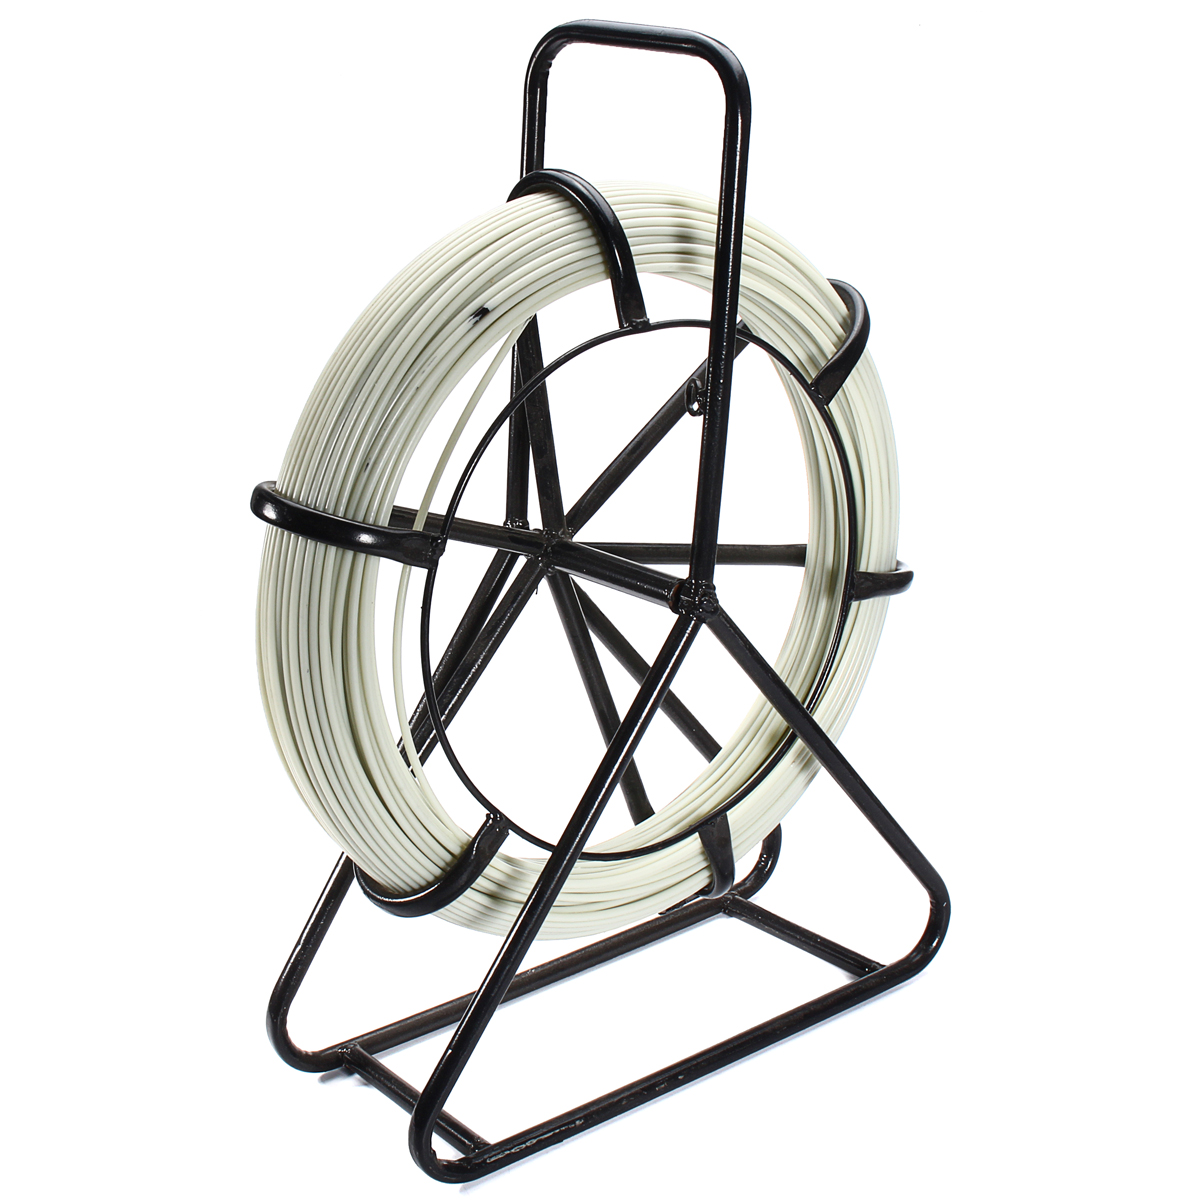 4.5mm*100m Fiberglass Wire Cable Fish Tape Running Rod Duct Puller ...